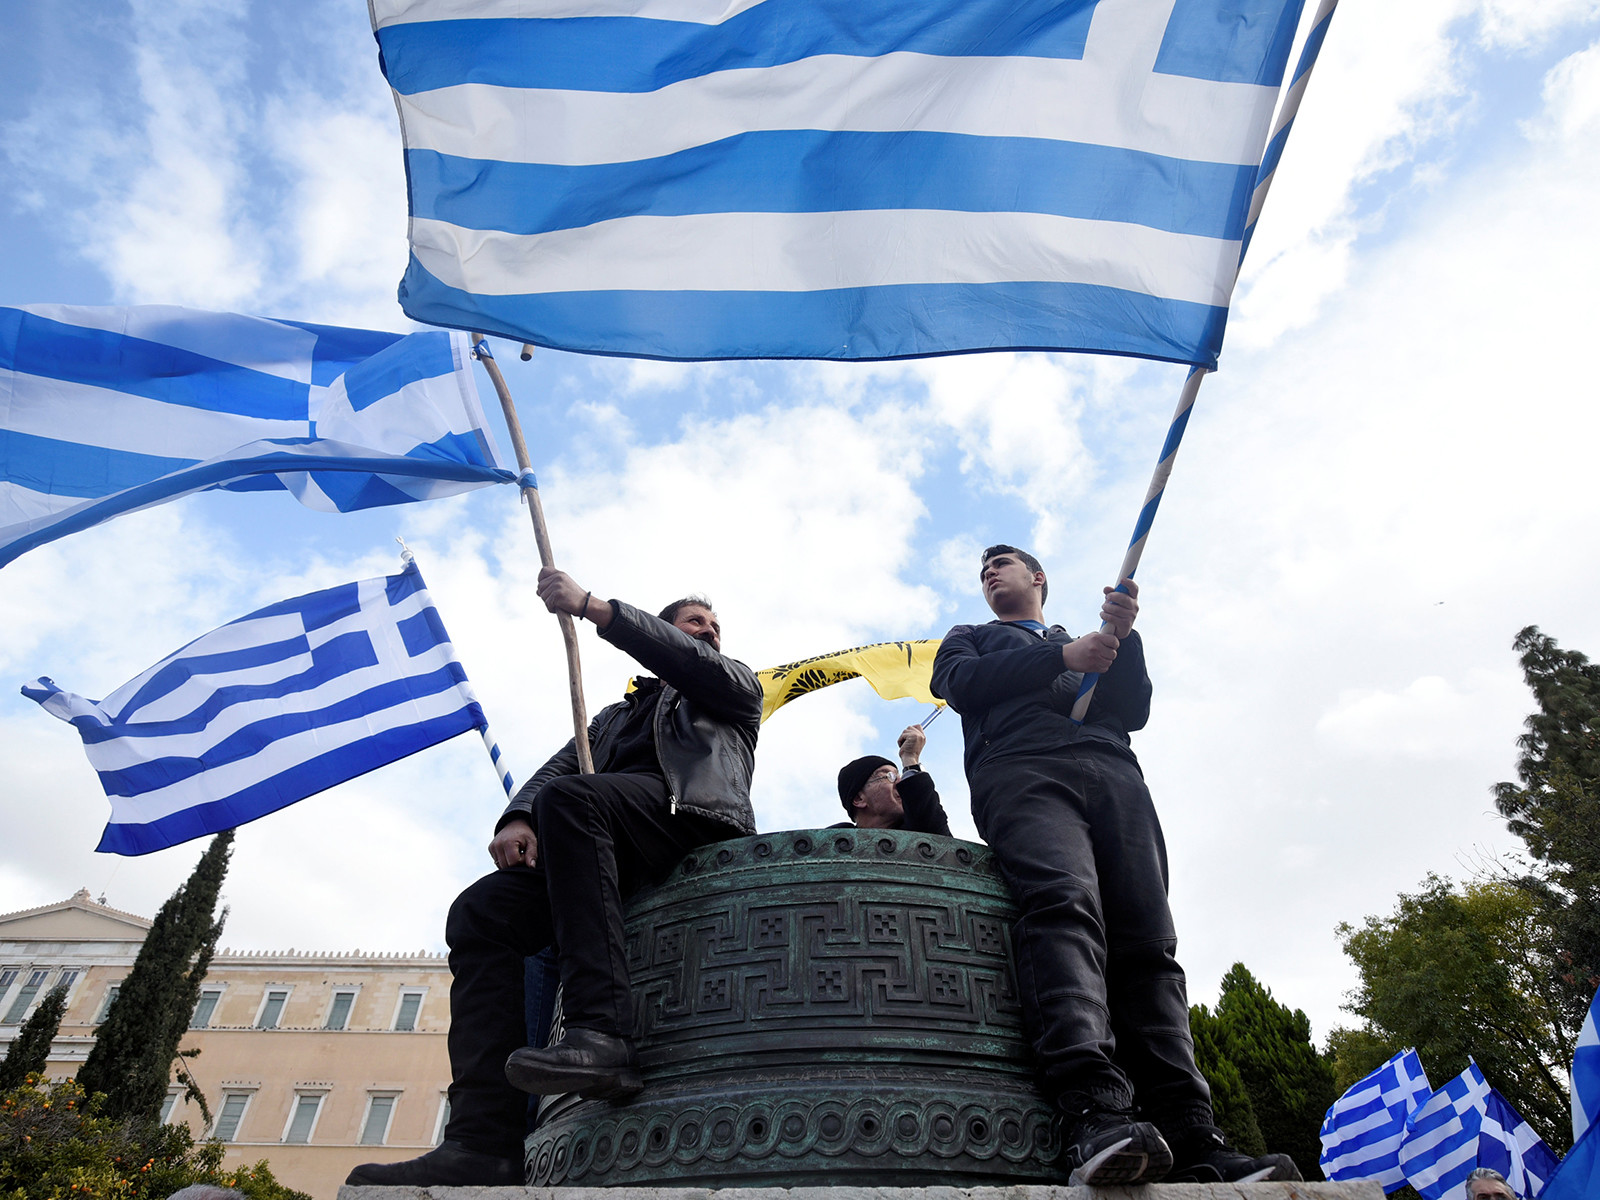 Protesters waving Greek flags take part in a demonstration against the agreement reached by Greece and Macedonia to resolve a dispute over the former Yugoslav republic's name, in Athens, Greece, January 20, 2019. REUTERS/Alexandros Avramidis